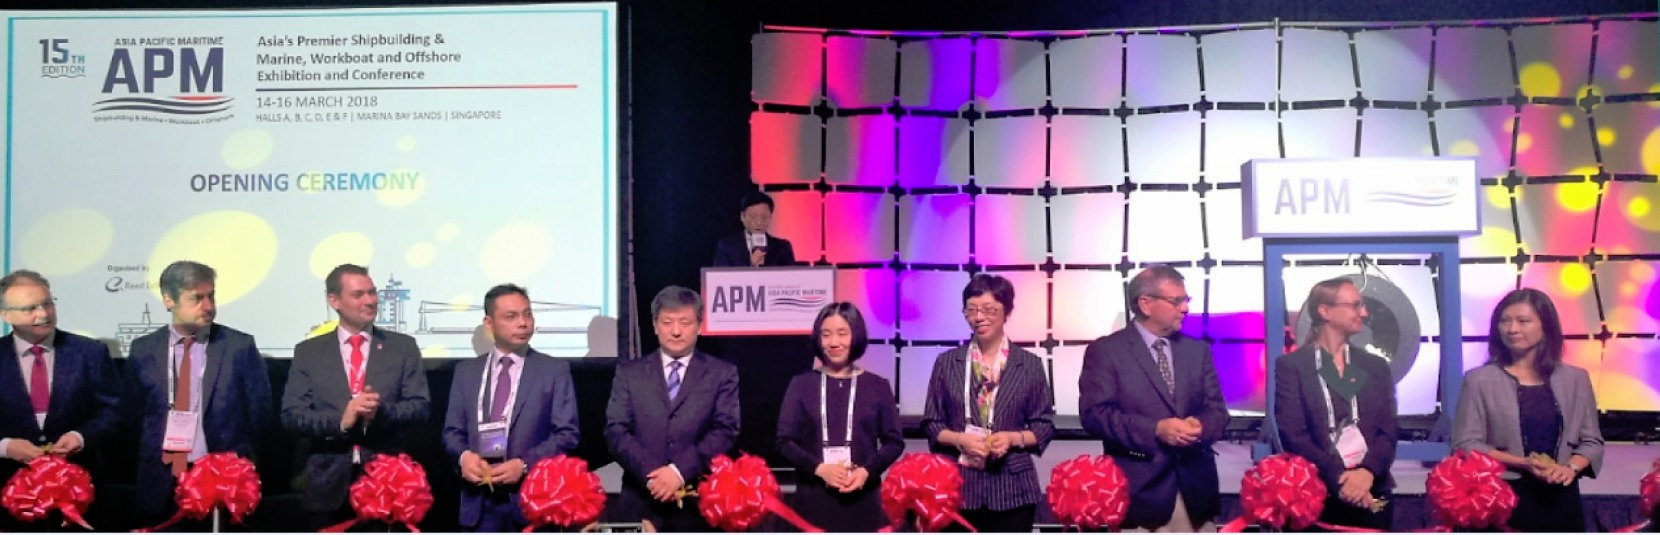 The 2018 Asia Pacific Maritime Exhibition and China Maritime Industry Branding Promotion Convenes in Singapore